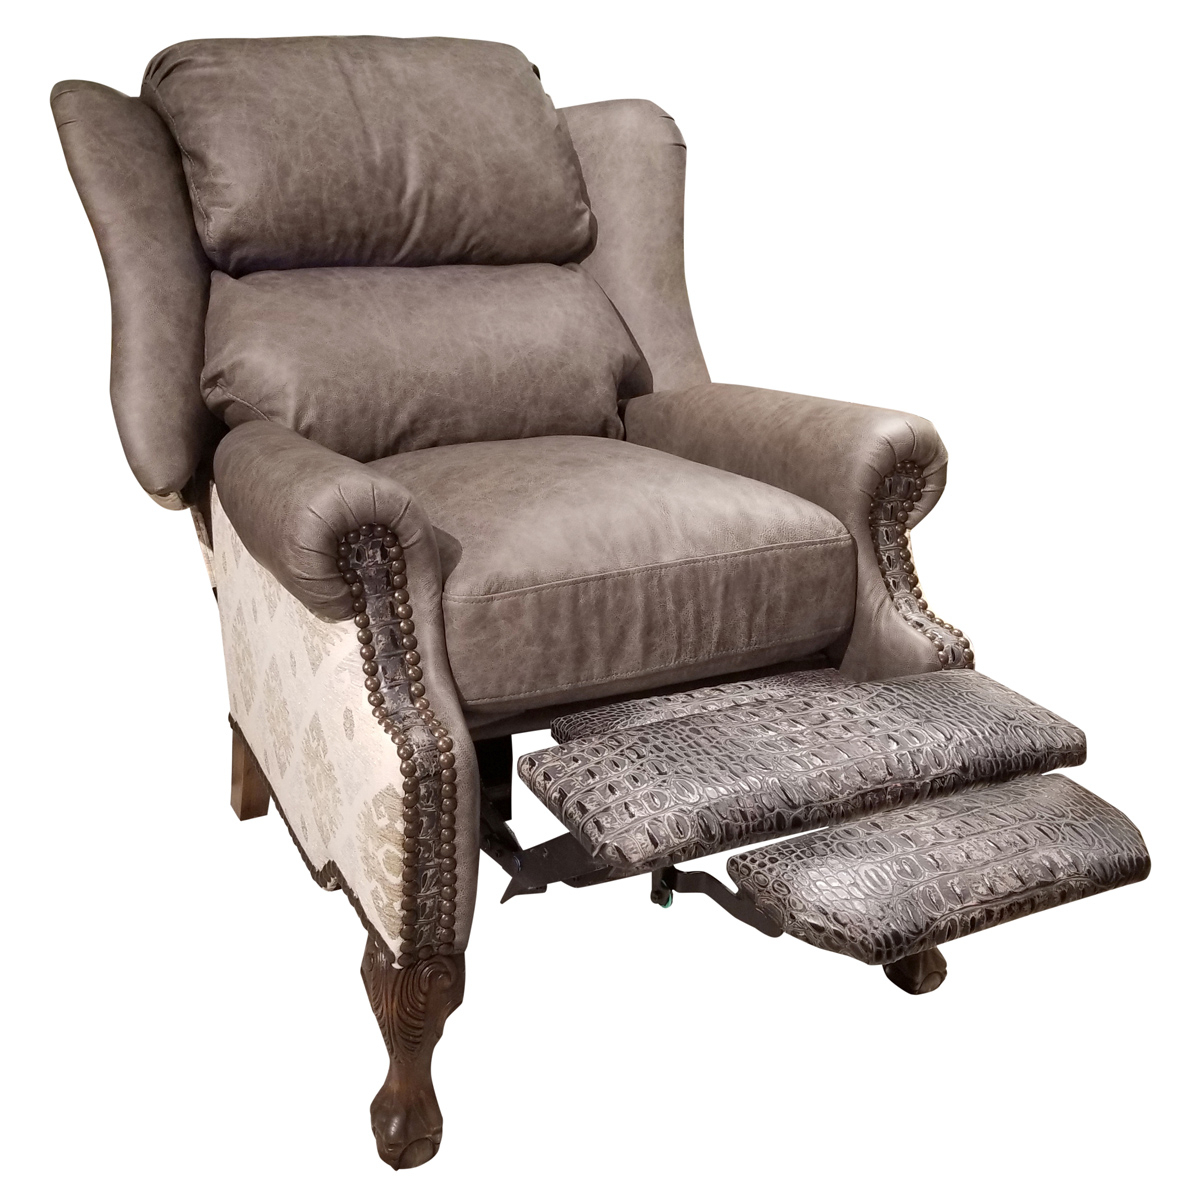 Modern Ranch Wingback Recliner Regarding Most Up To Date Sweetwater Wingback Chairs (View 17 of 20)